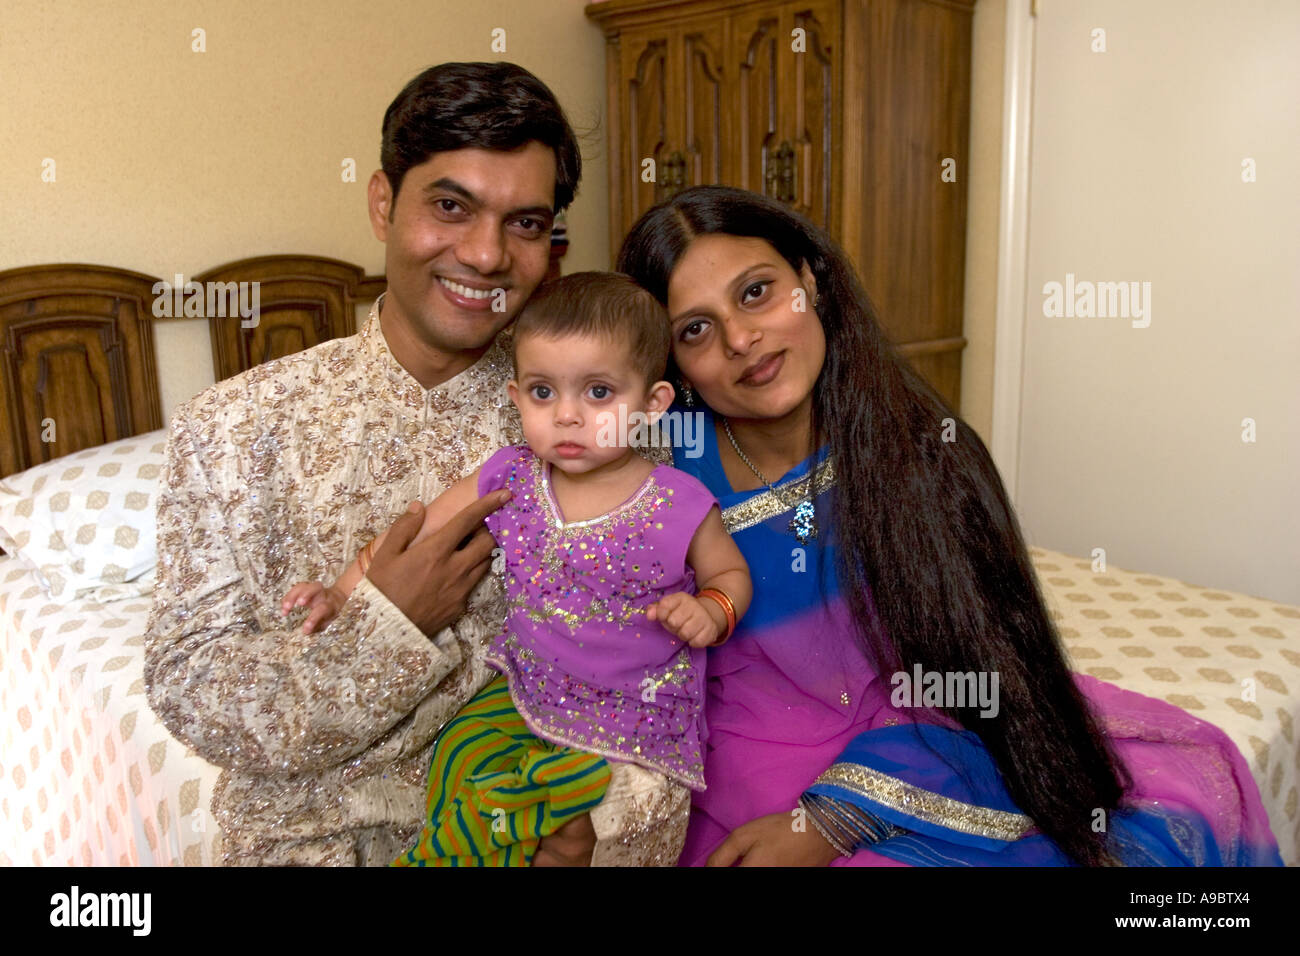 Young bangladeshi american couple with their baby during the holiday of eid in brooklyn new york